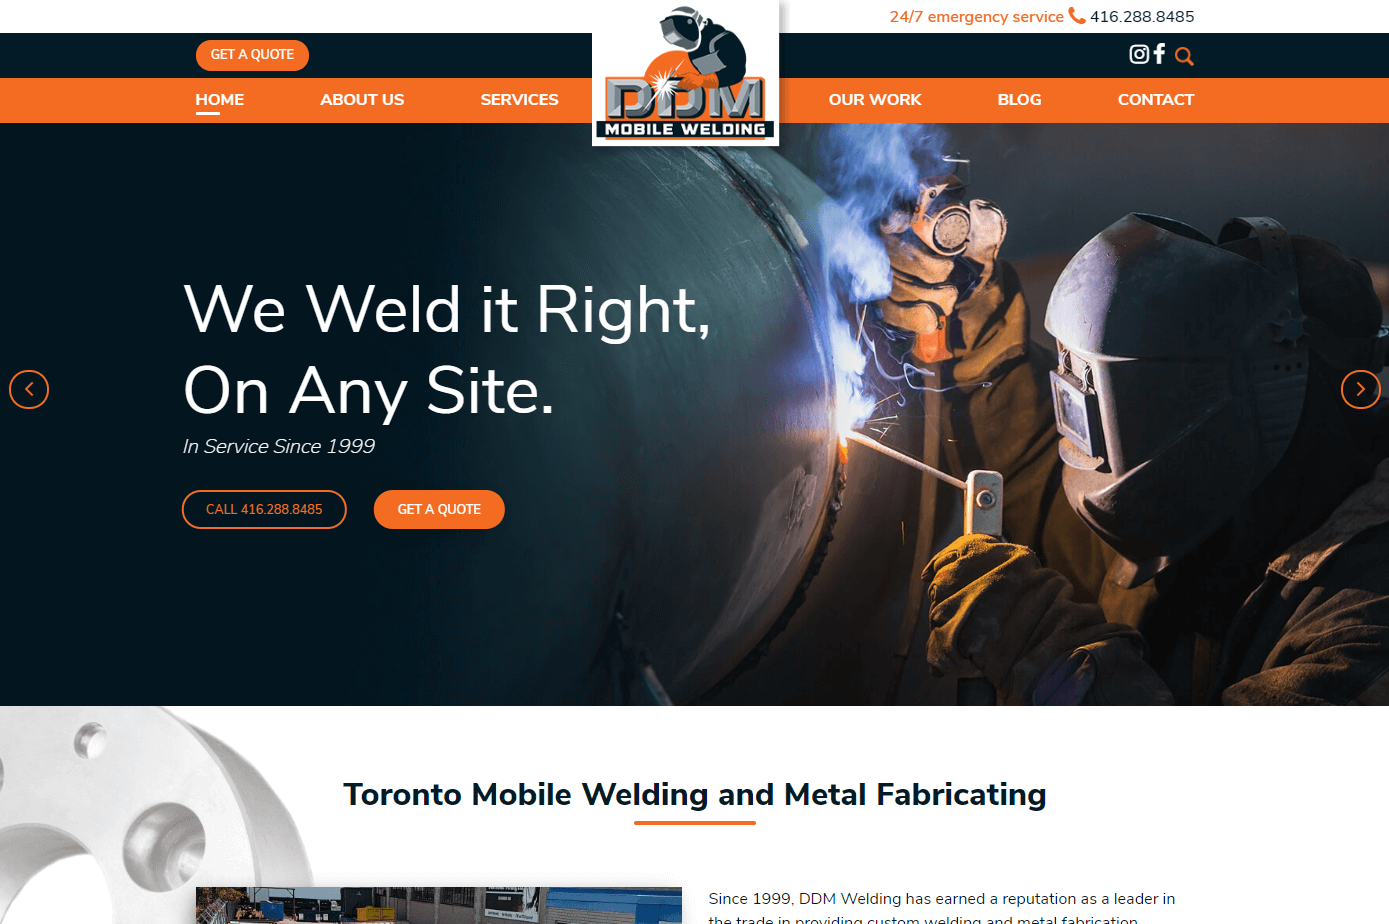 DDM Mobile Welding